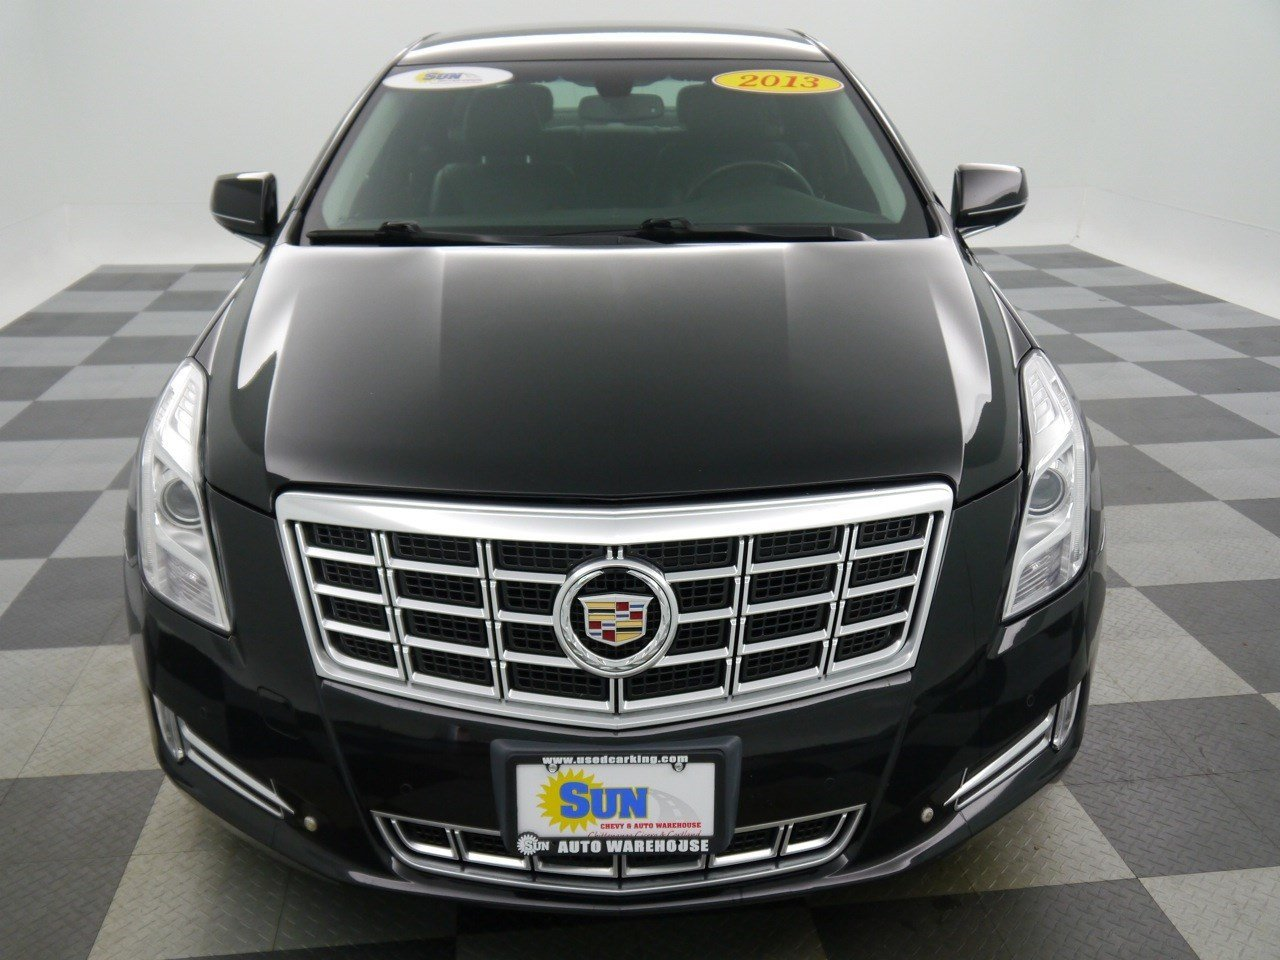 cadillac latin singles Start meeting singles in cadillac today with our free online personals and free cadillac chat cadillac latin singles | cadillac mature singles.